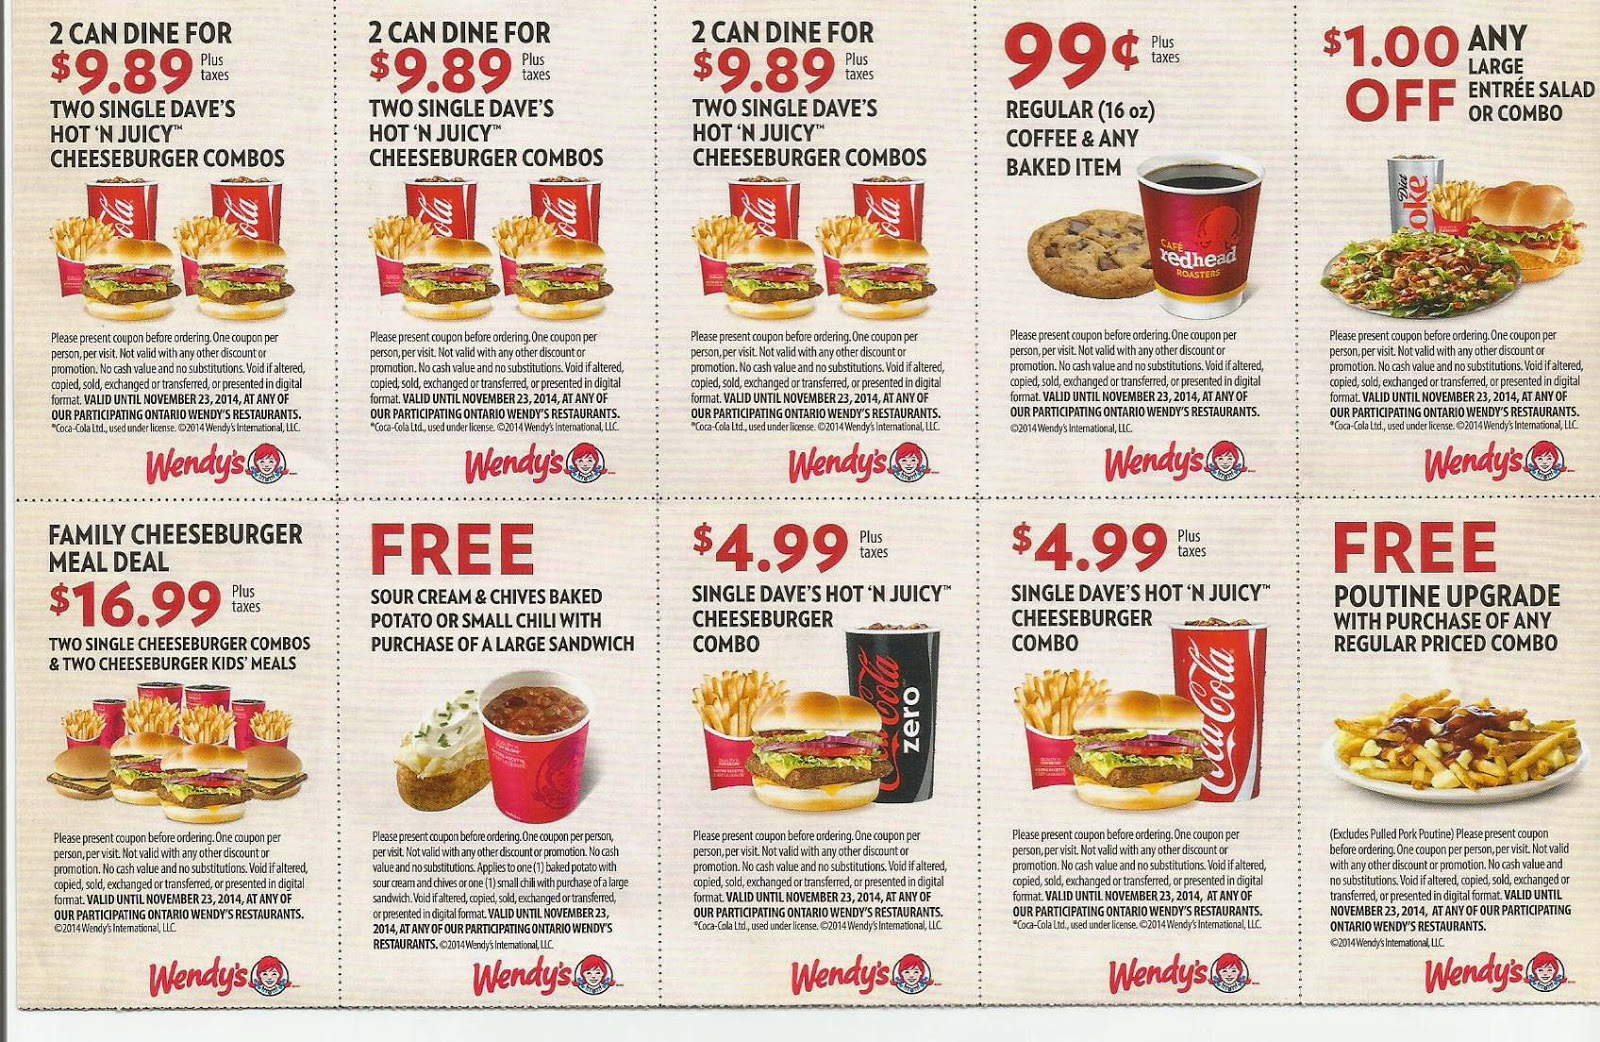 free printable Wendys Coupons for 2016 (28)